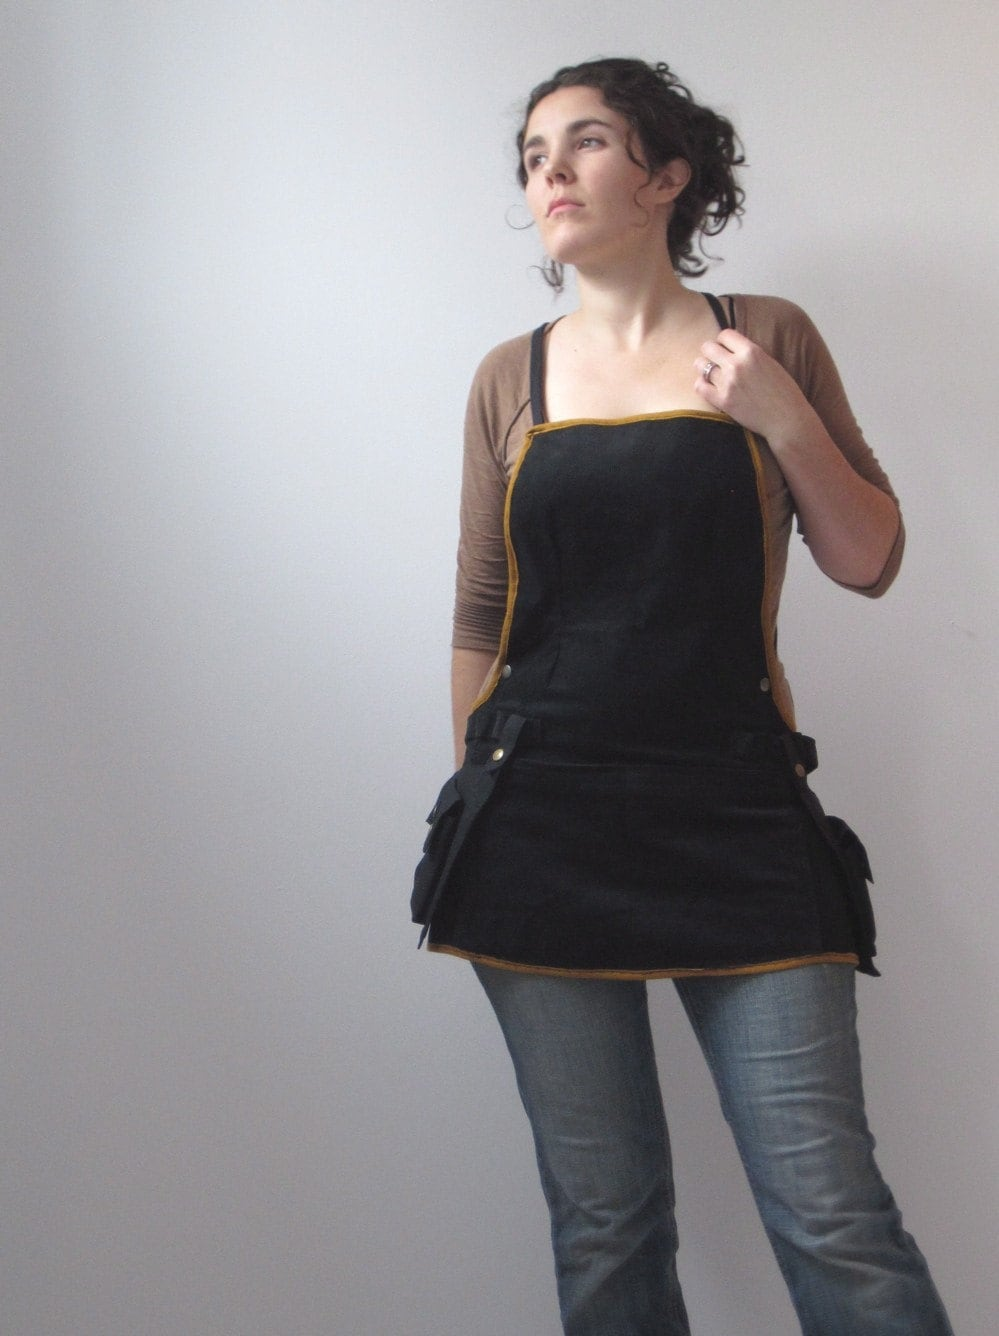 Reserved For Toni Woman At Work Apron Black And Brass